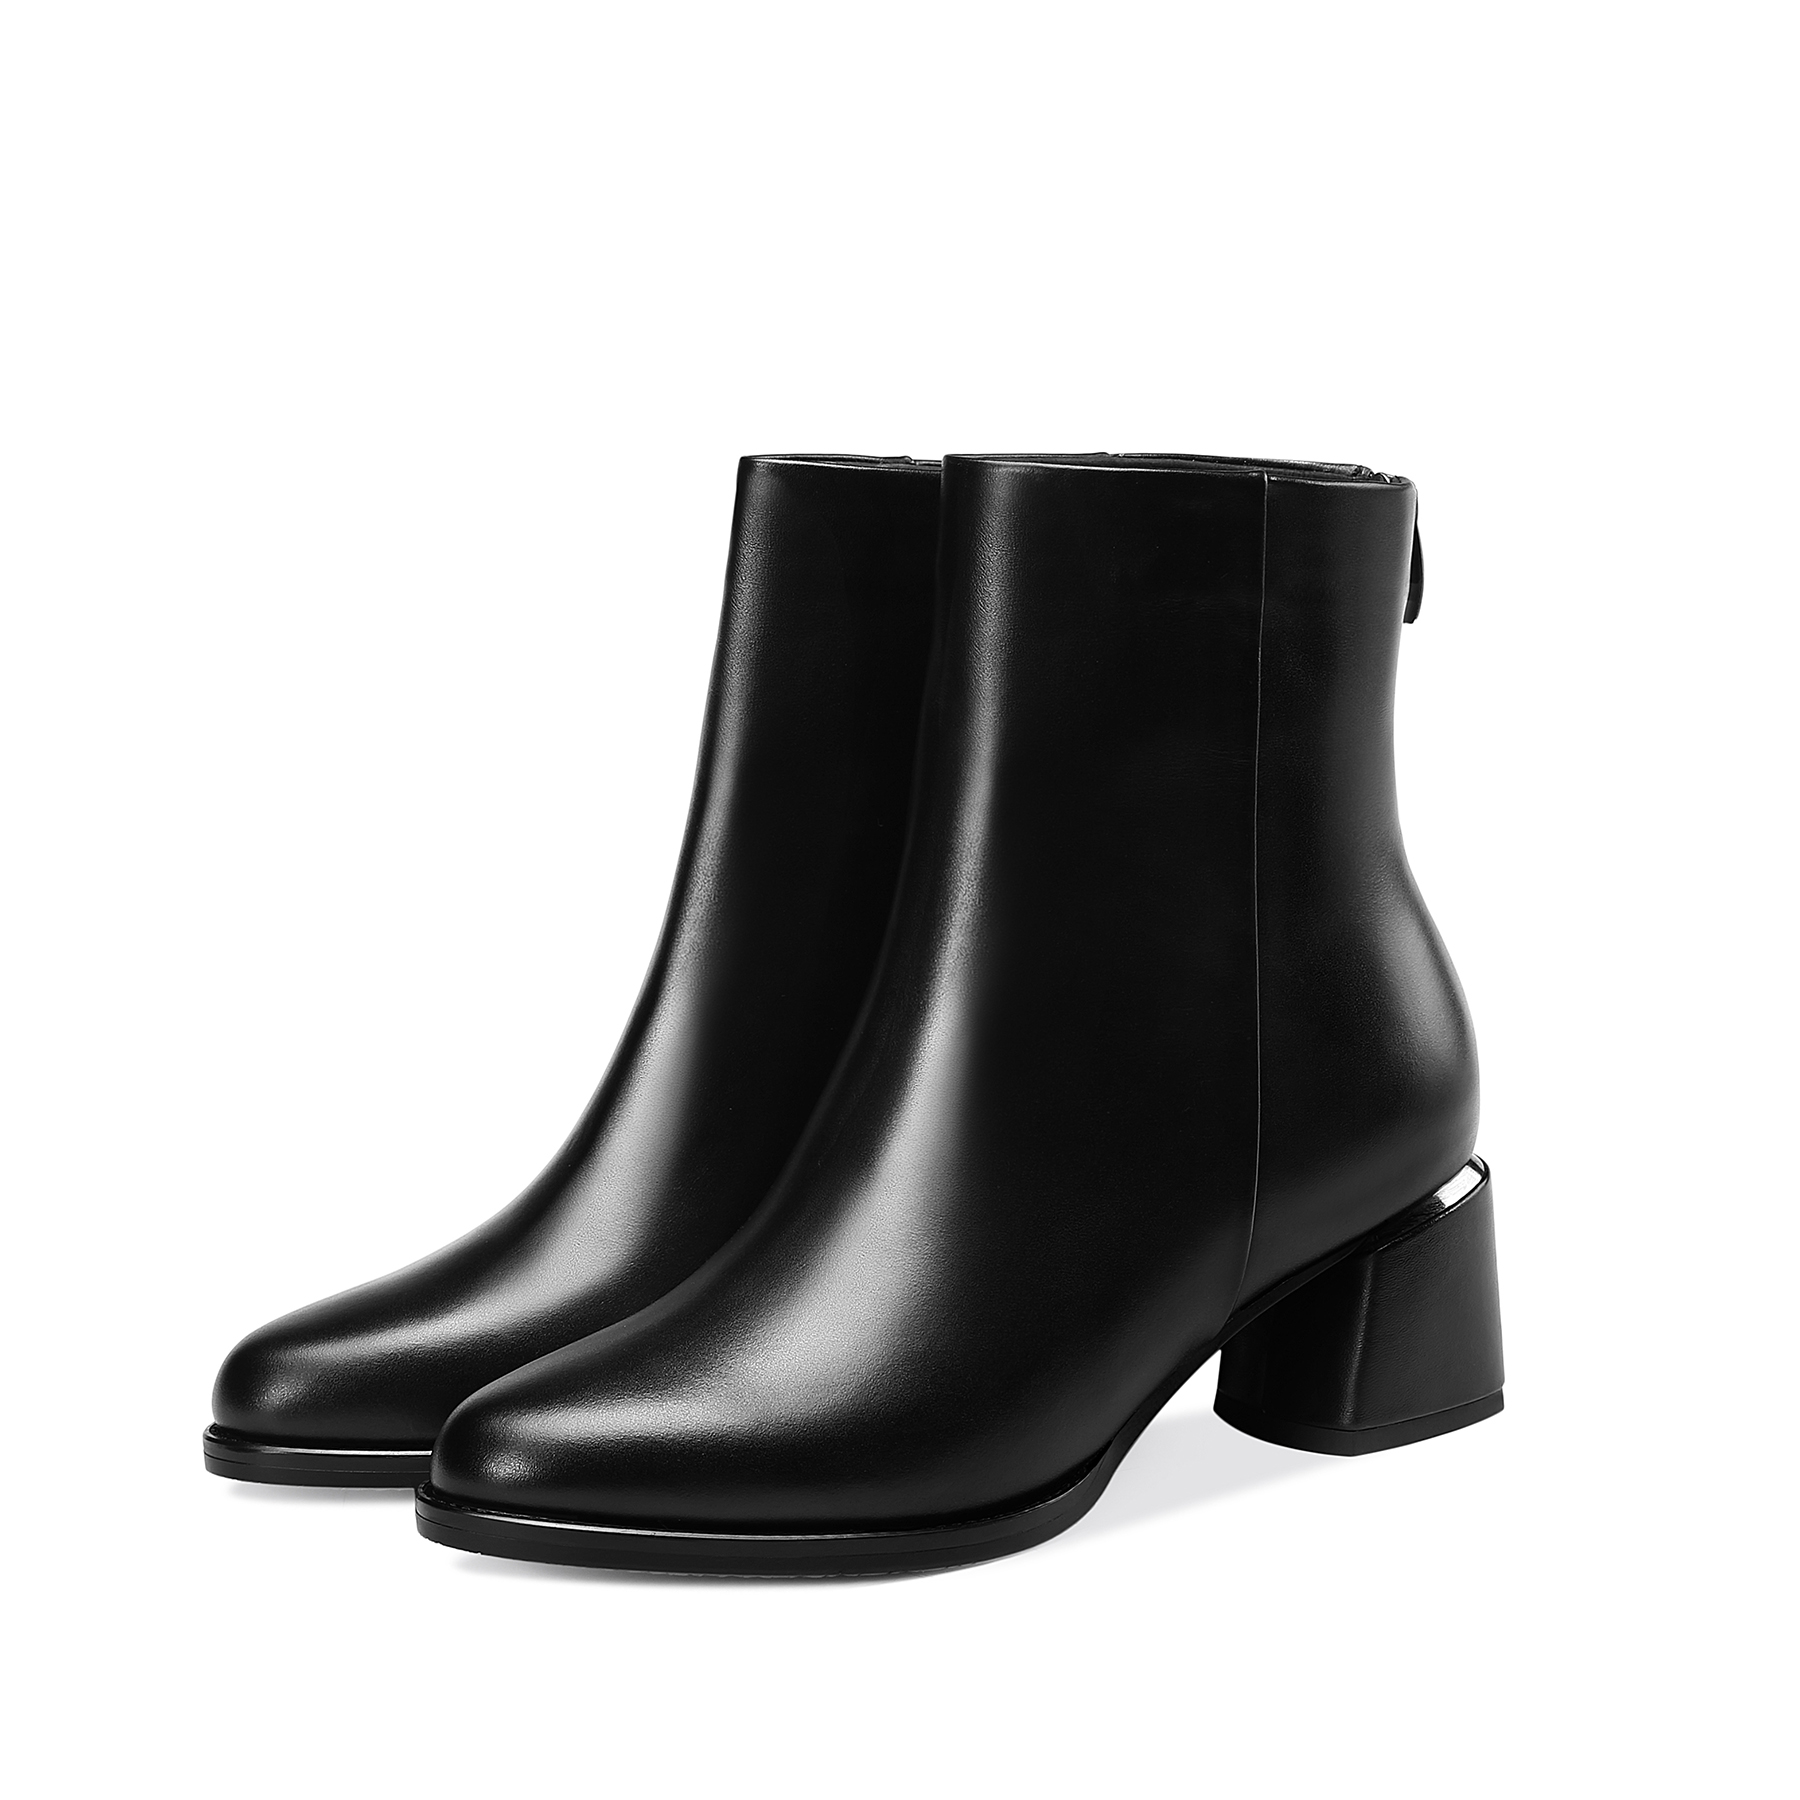 Winter Warm Winter Shoes Genuine Leather Black Boots Women 5 5cm Big Size in Ankle Boots from Shoes